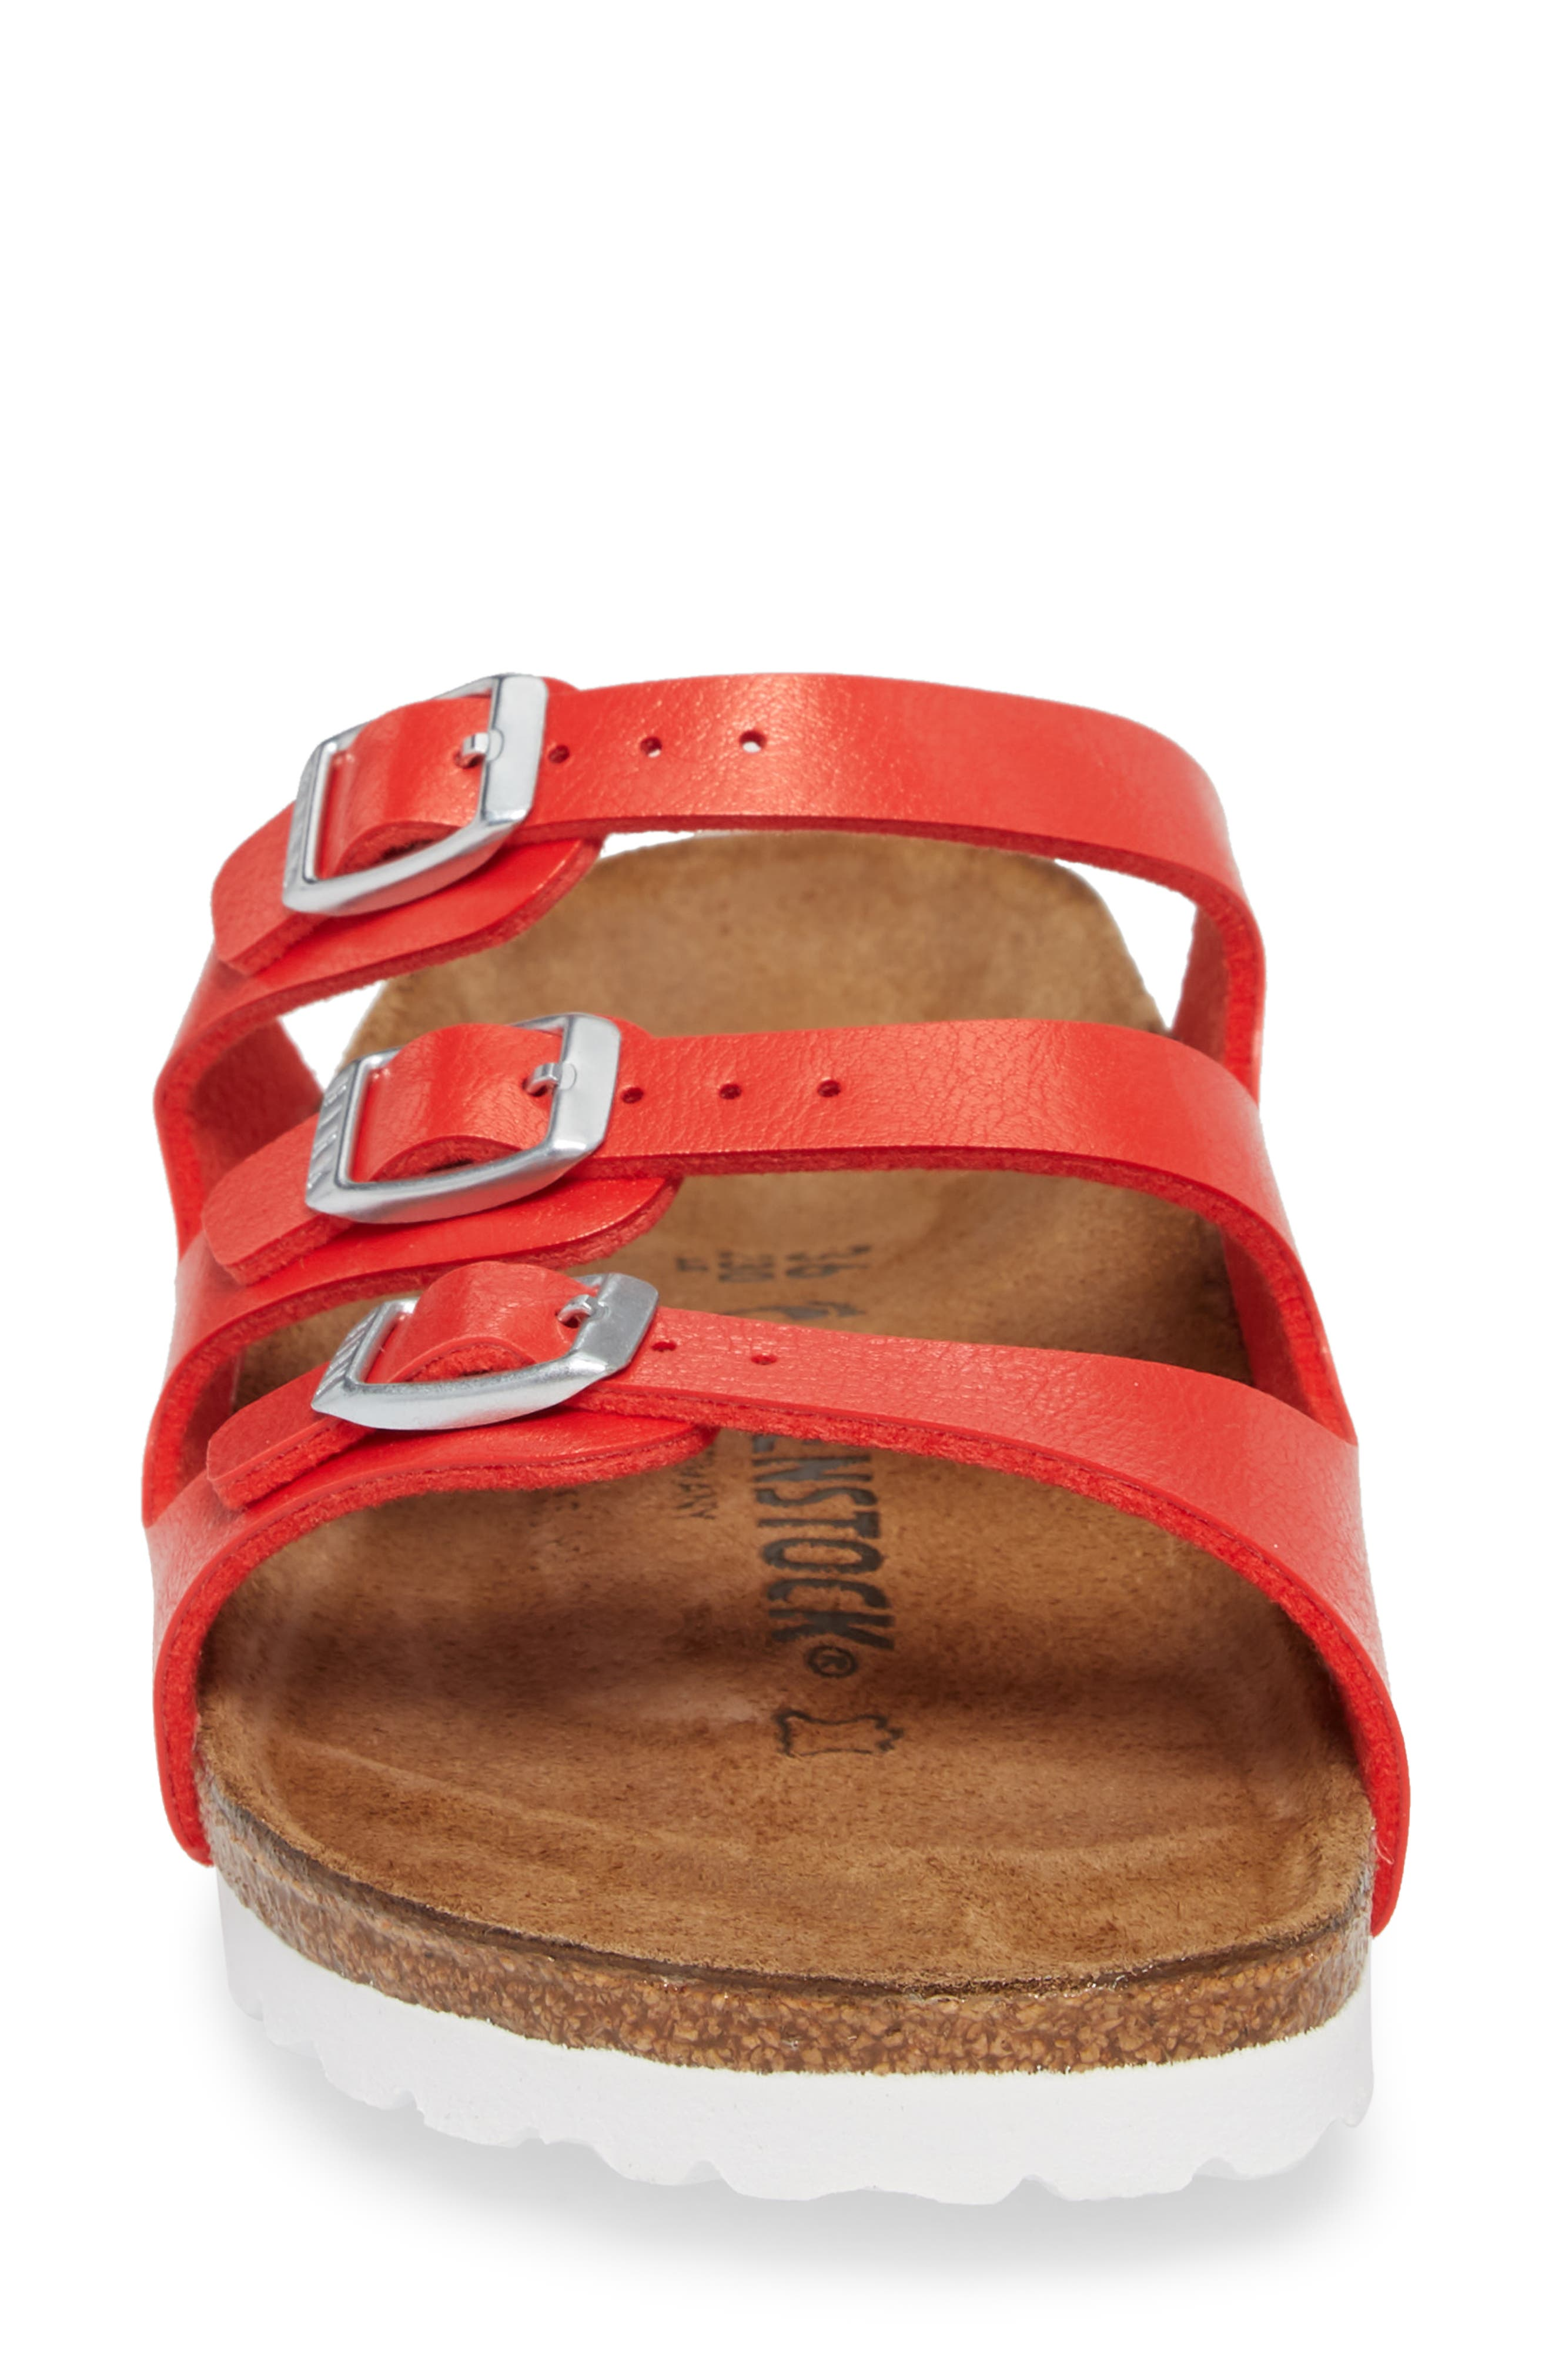 'Florida' Soft Footbed Sandal,                             Alternate thumbnail 4, color,                             Graceful Hibiscus Leather